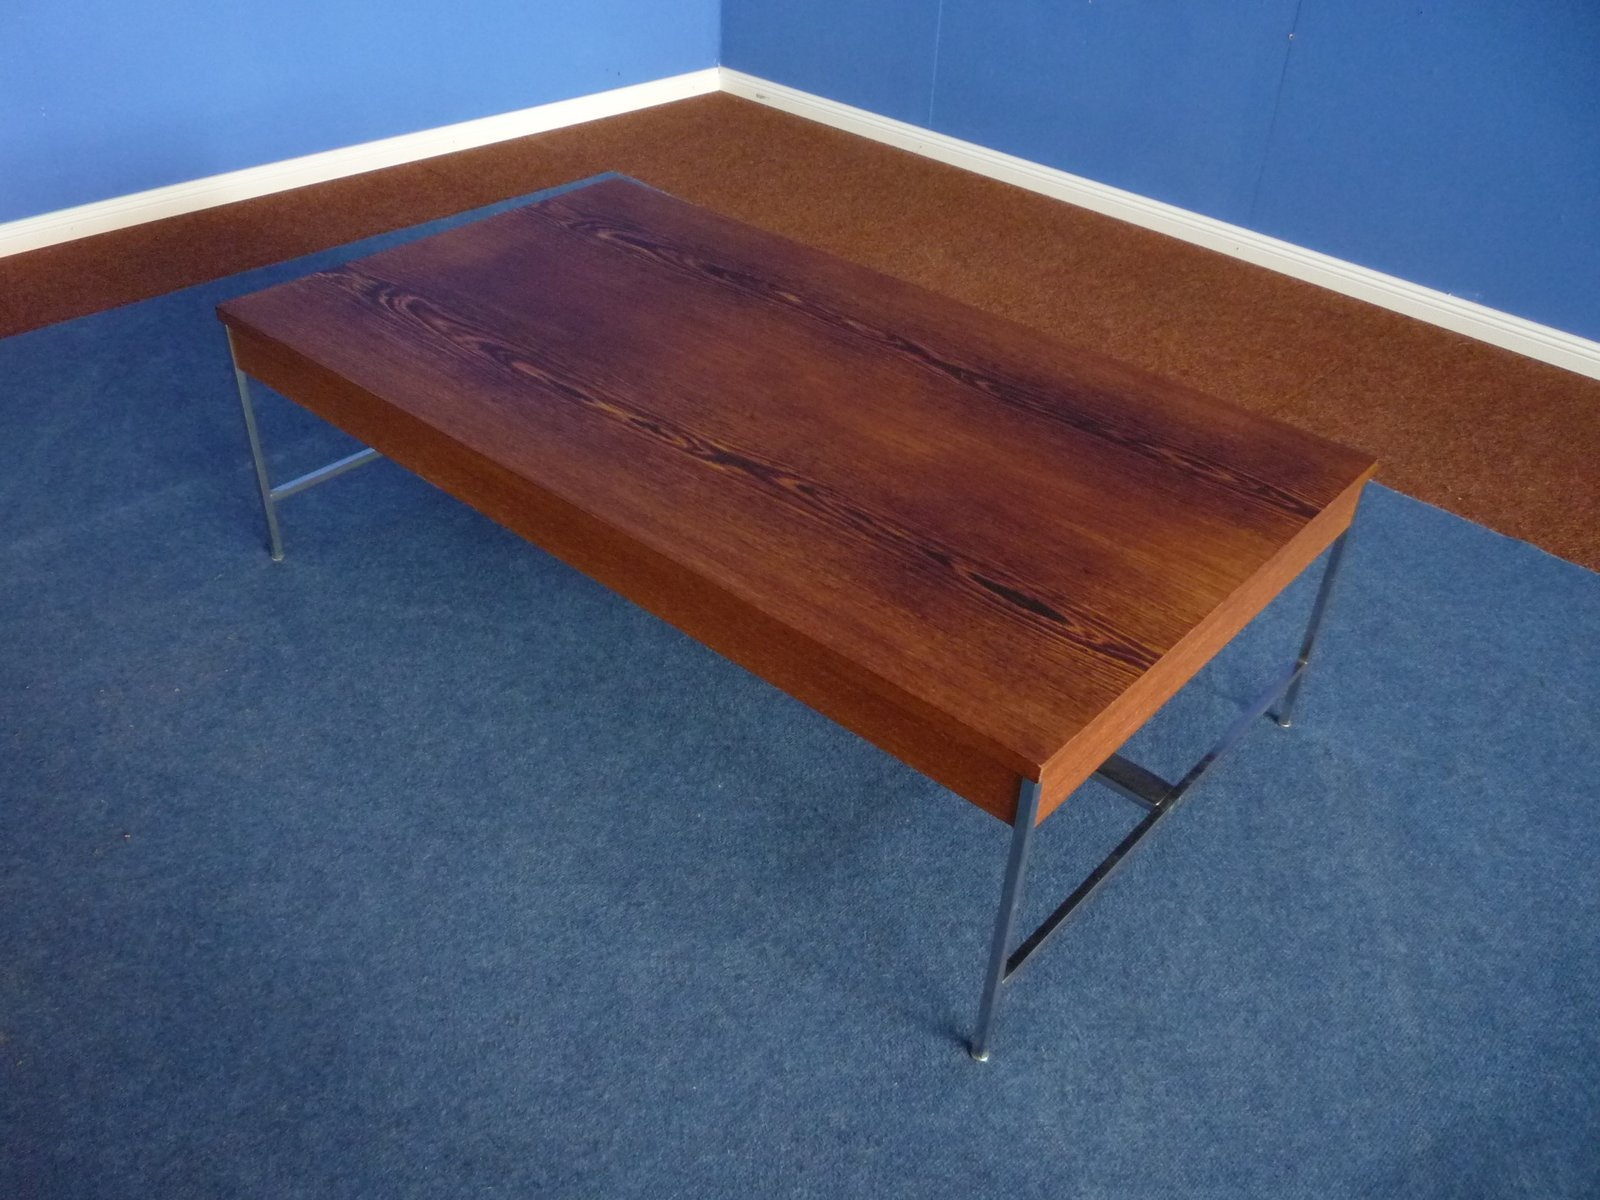 Coffee Table In Wenge By George Nelson For Herman Miller 1957 For Sale At Pamono